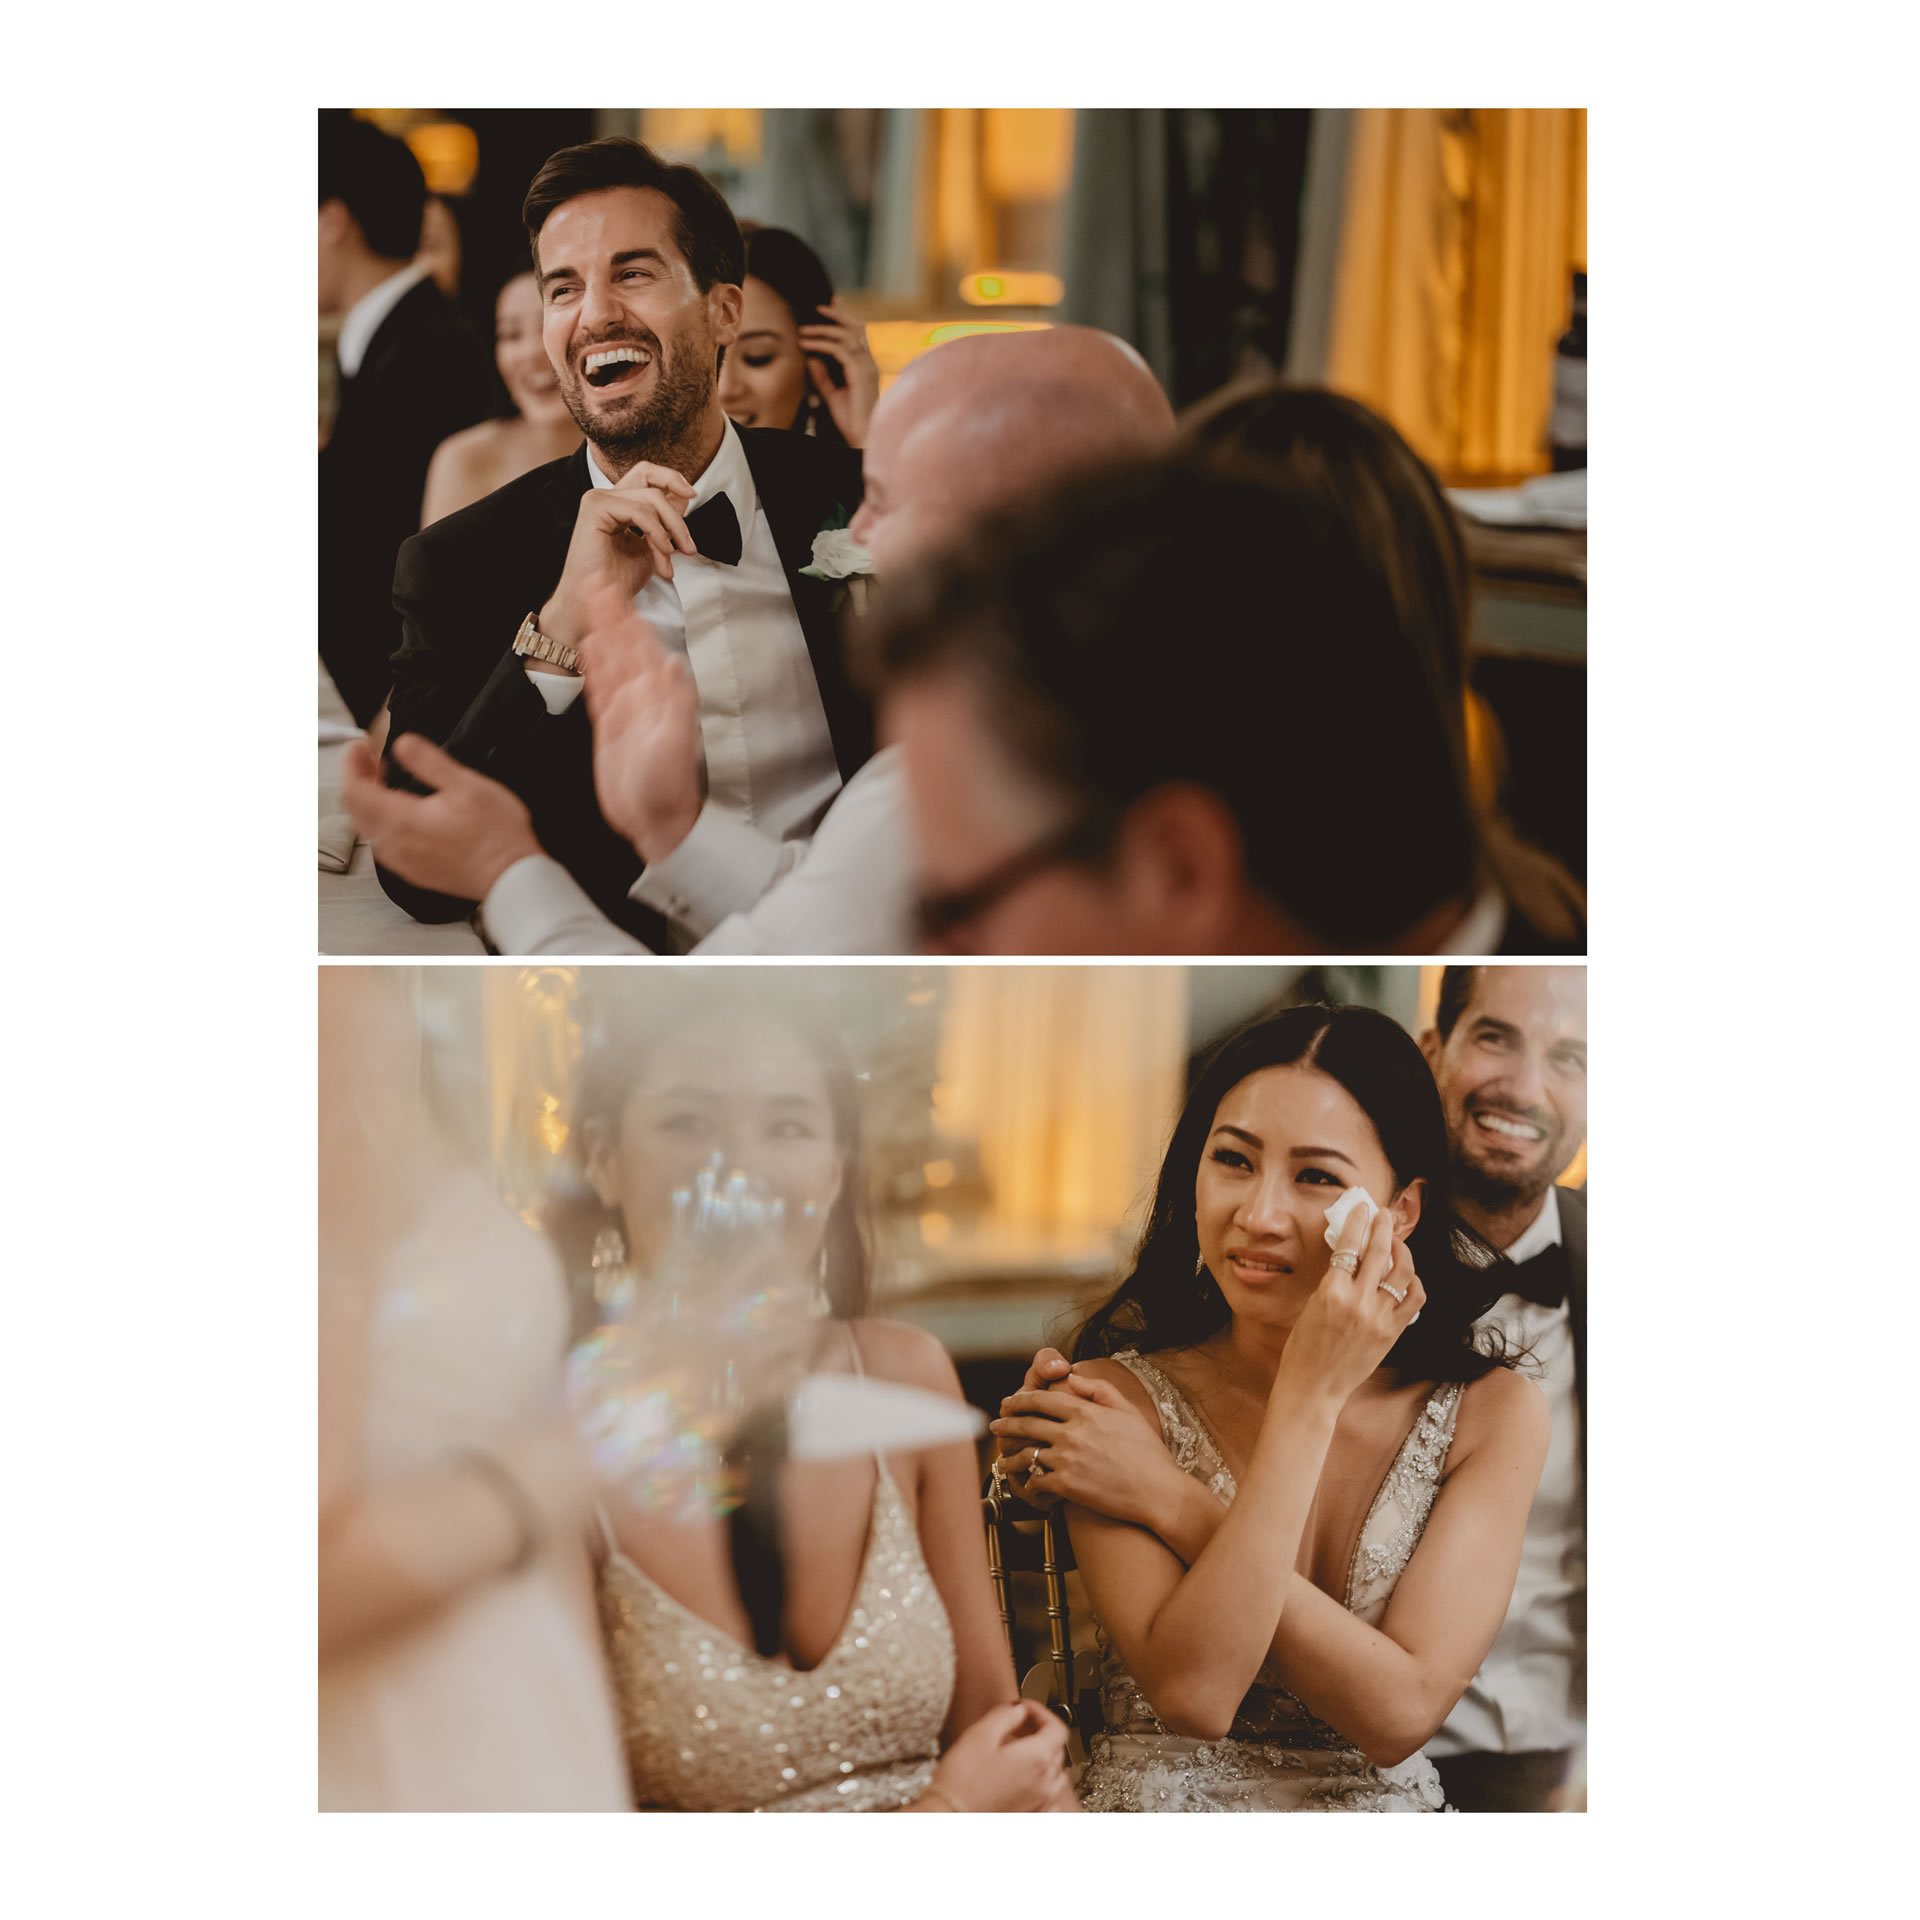 Luxury wedding in Florence (with a chinese tea ceremony) - 42 :: Luxury wedding in Florence (with a chinese tea ceremony) :: Luxury wedding photography - 41 :: Luxury wedding in Florence (with a chinese tea ceremony) - 42